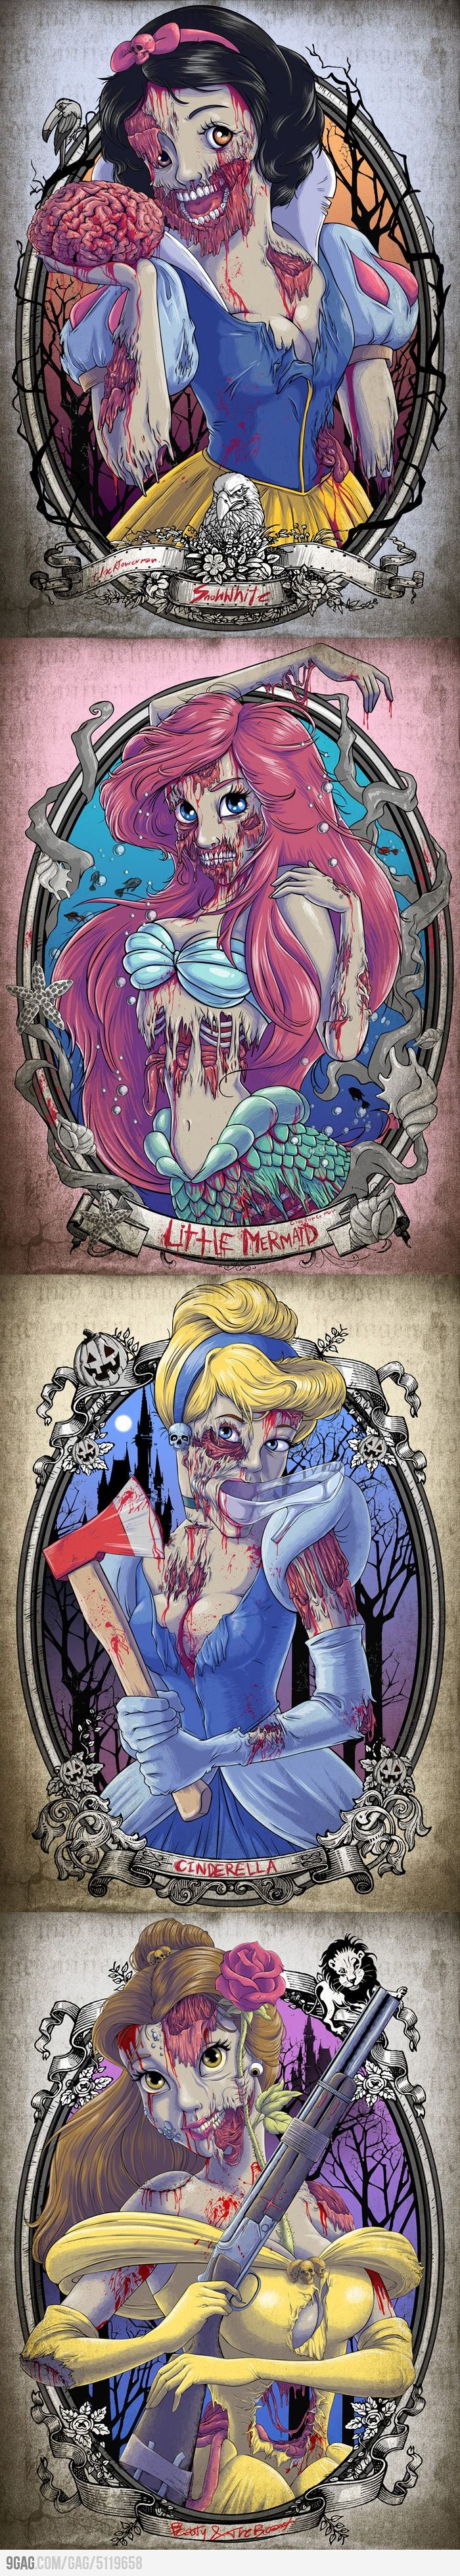 The Zombie Princesses